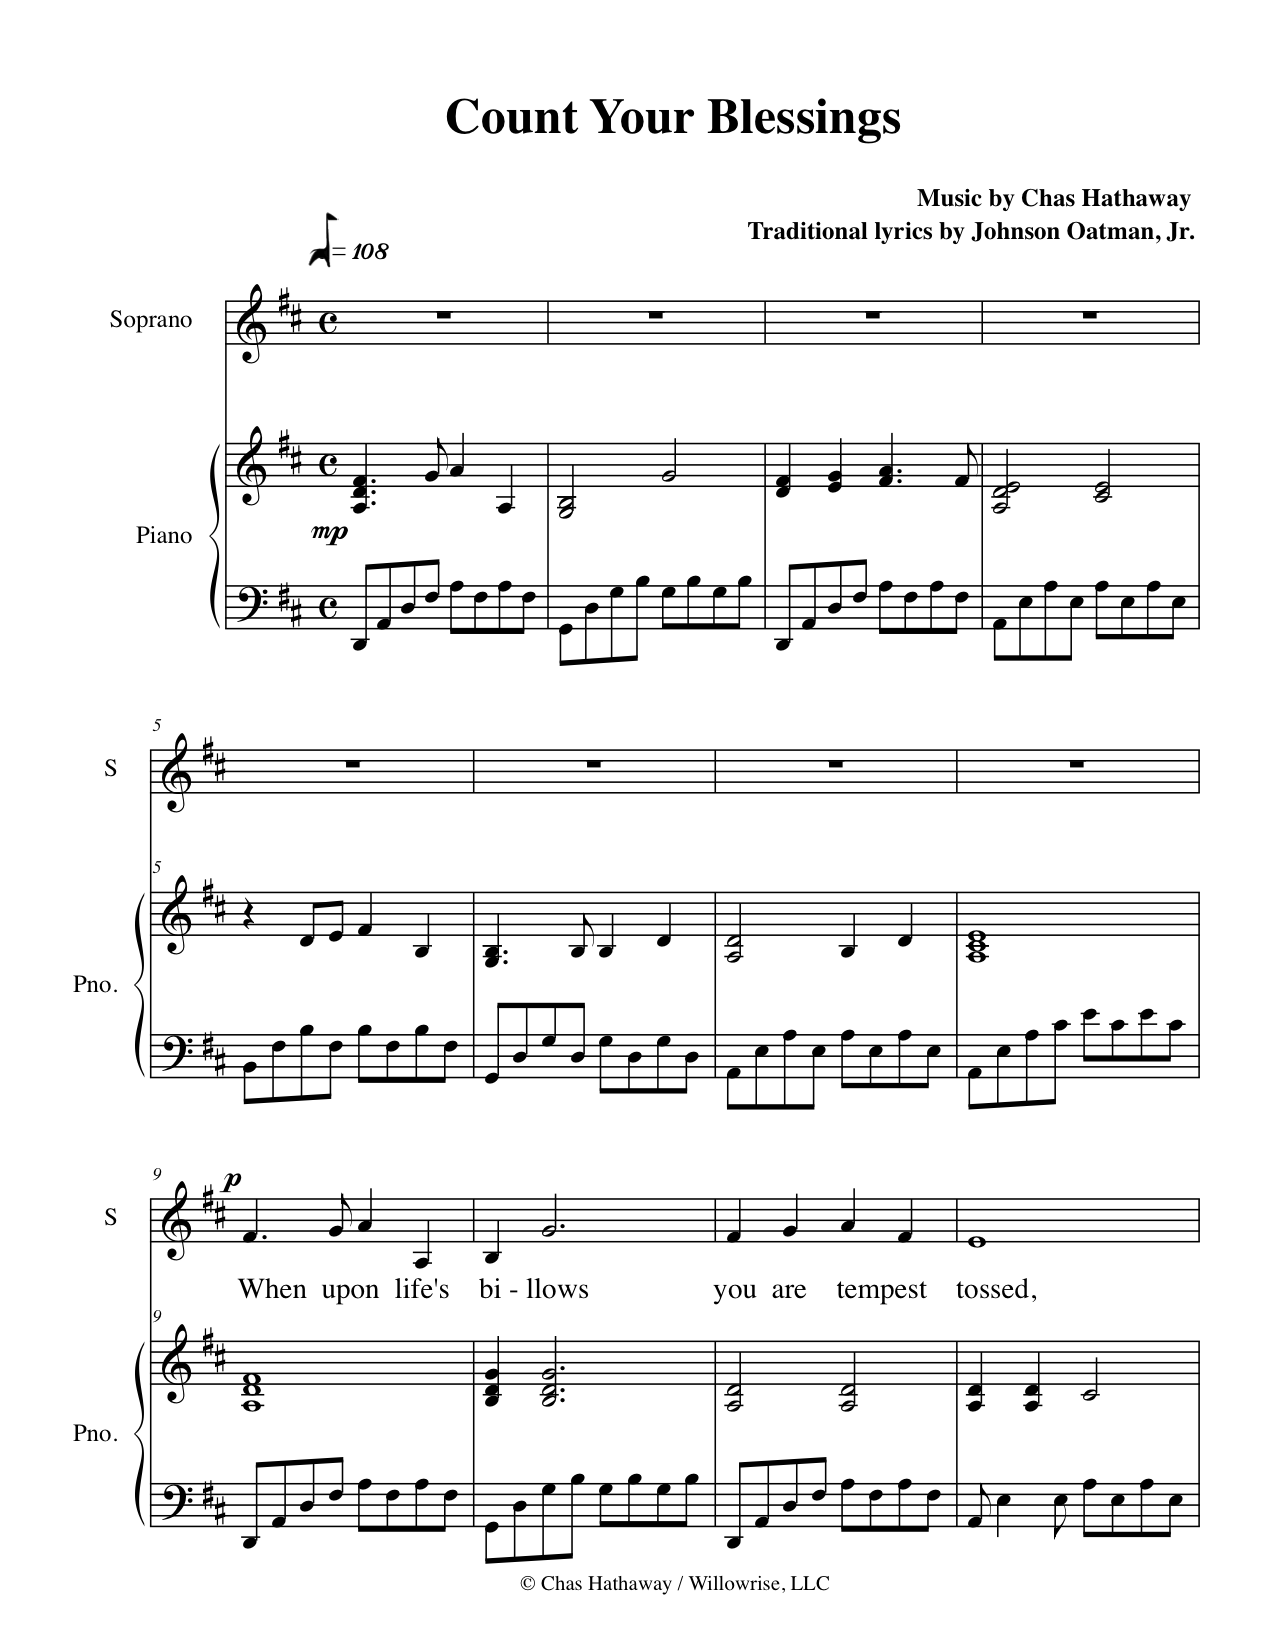 Count Your Blessings Sheet Music by Chas Hathaway